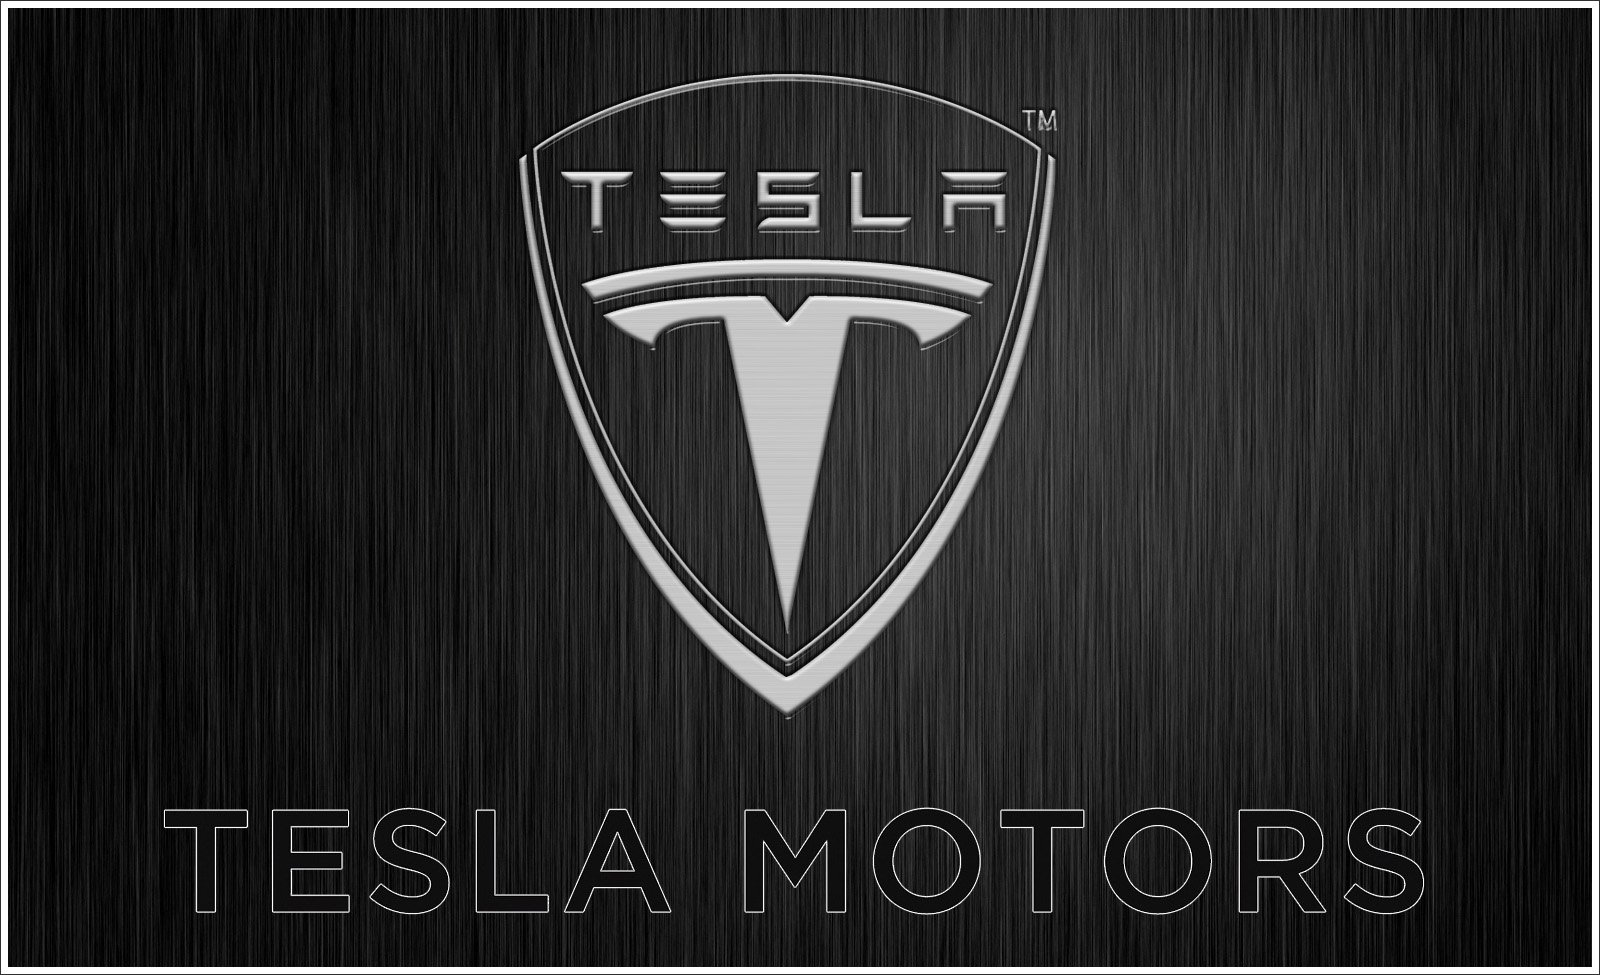 Tesla logo meaning and history latest models world cars brands tesla logo colors biocorpaavc